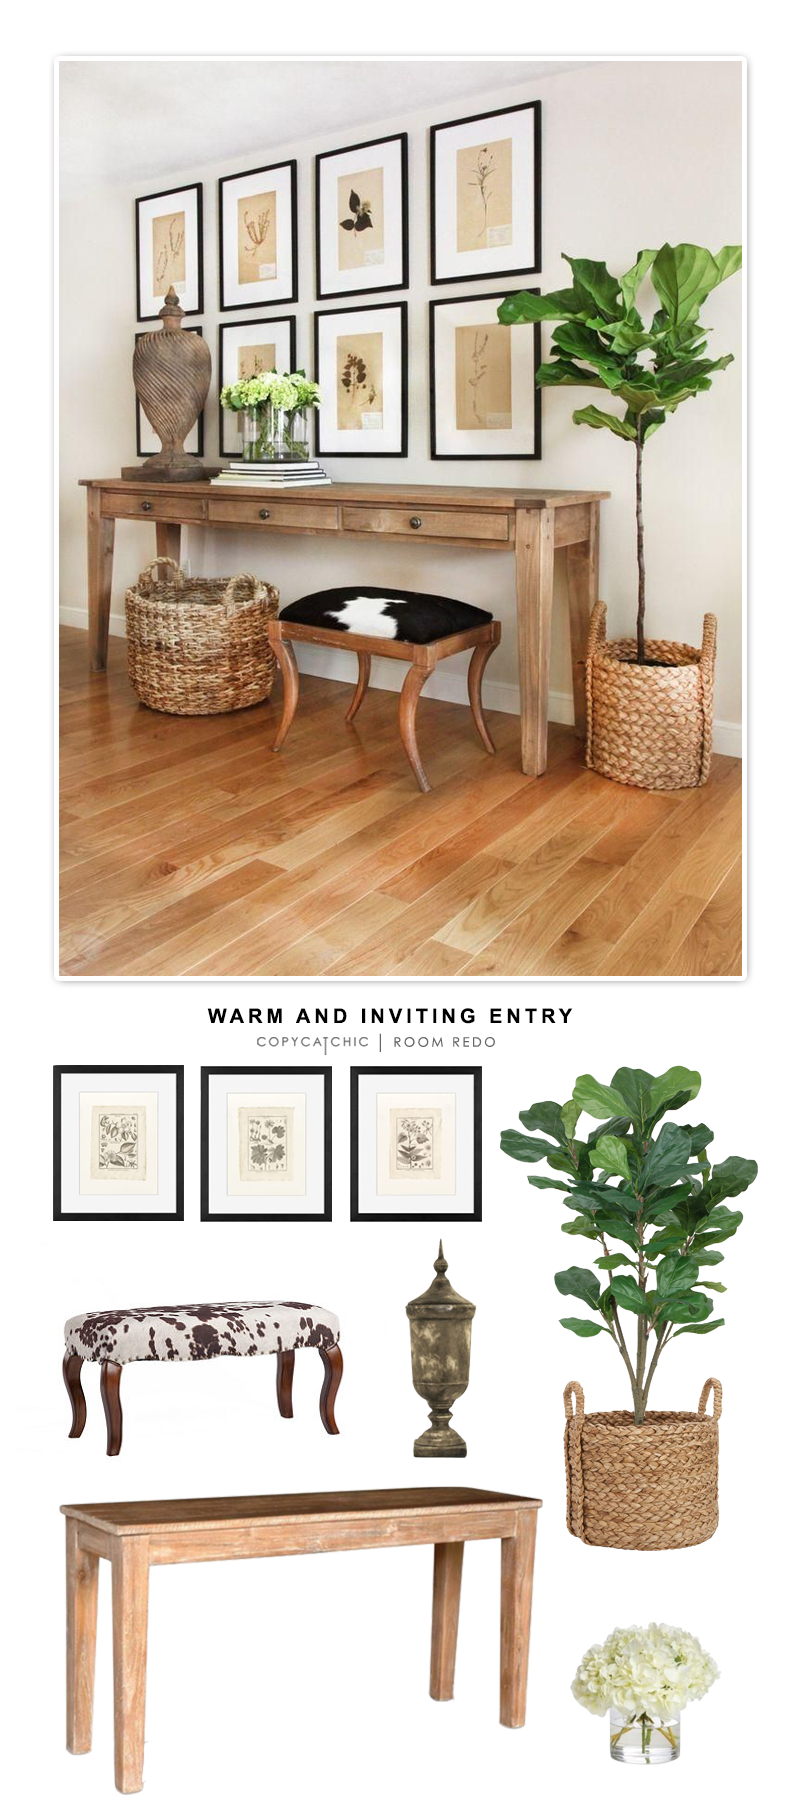 A-warm-and-inviting-entryway-designed-by-Kelly-McGuill-and-recreated-for-less-than-for-Copy-Ca-wallpaper-wp4002769-1